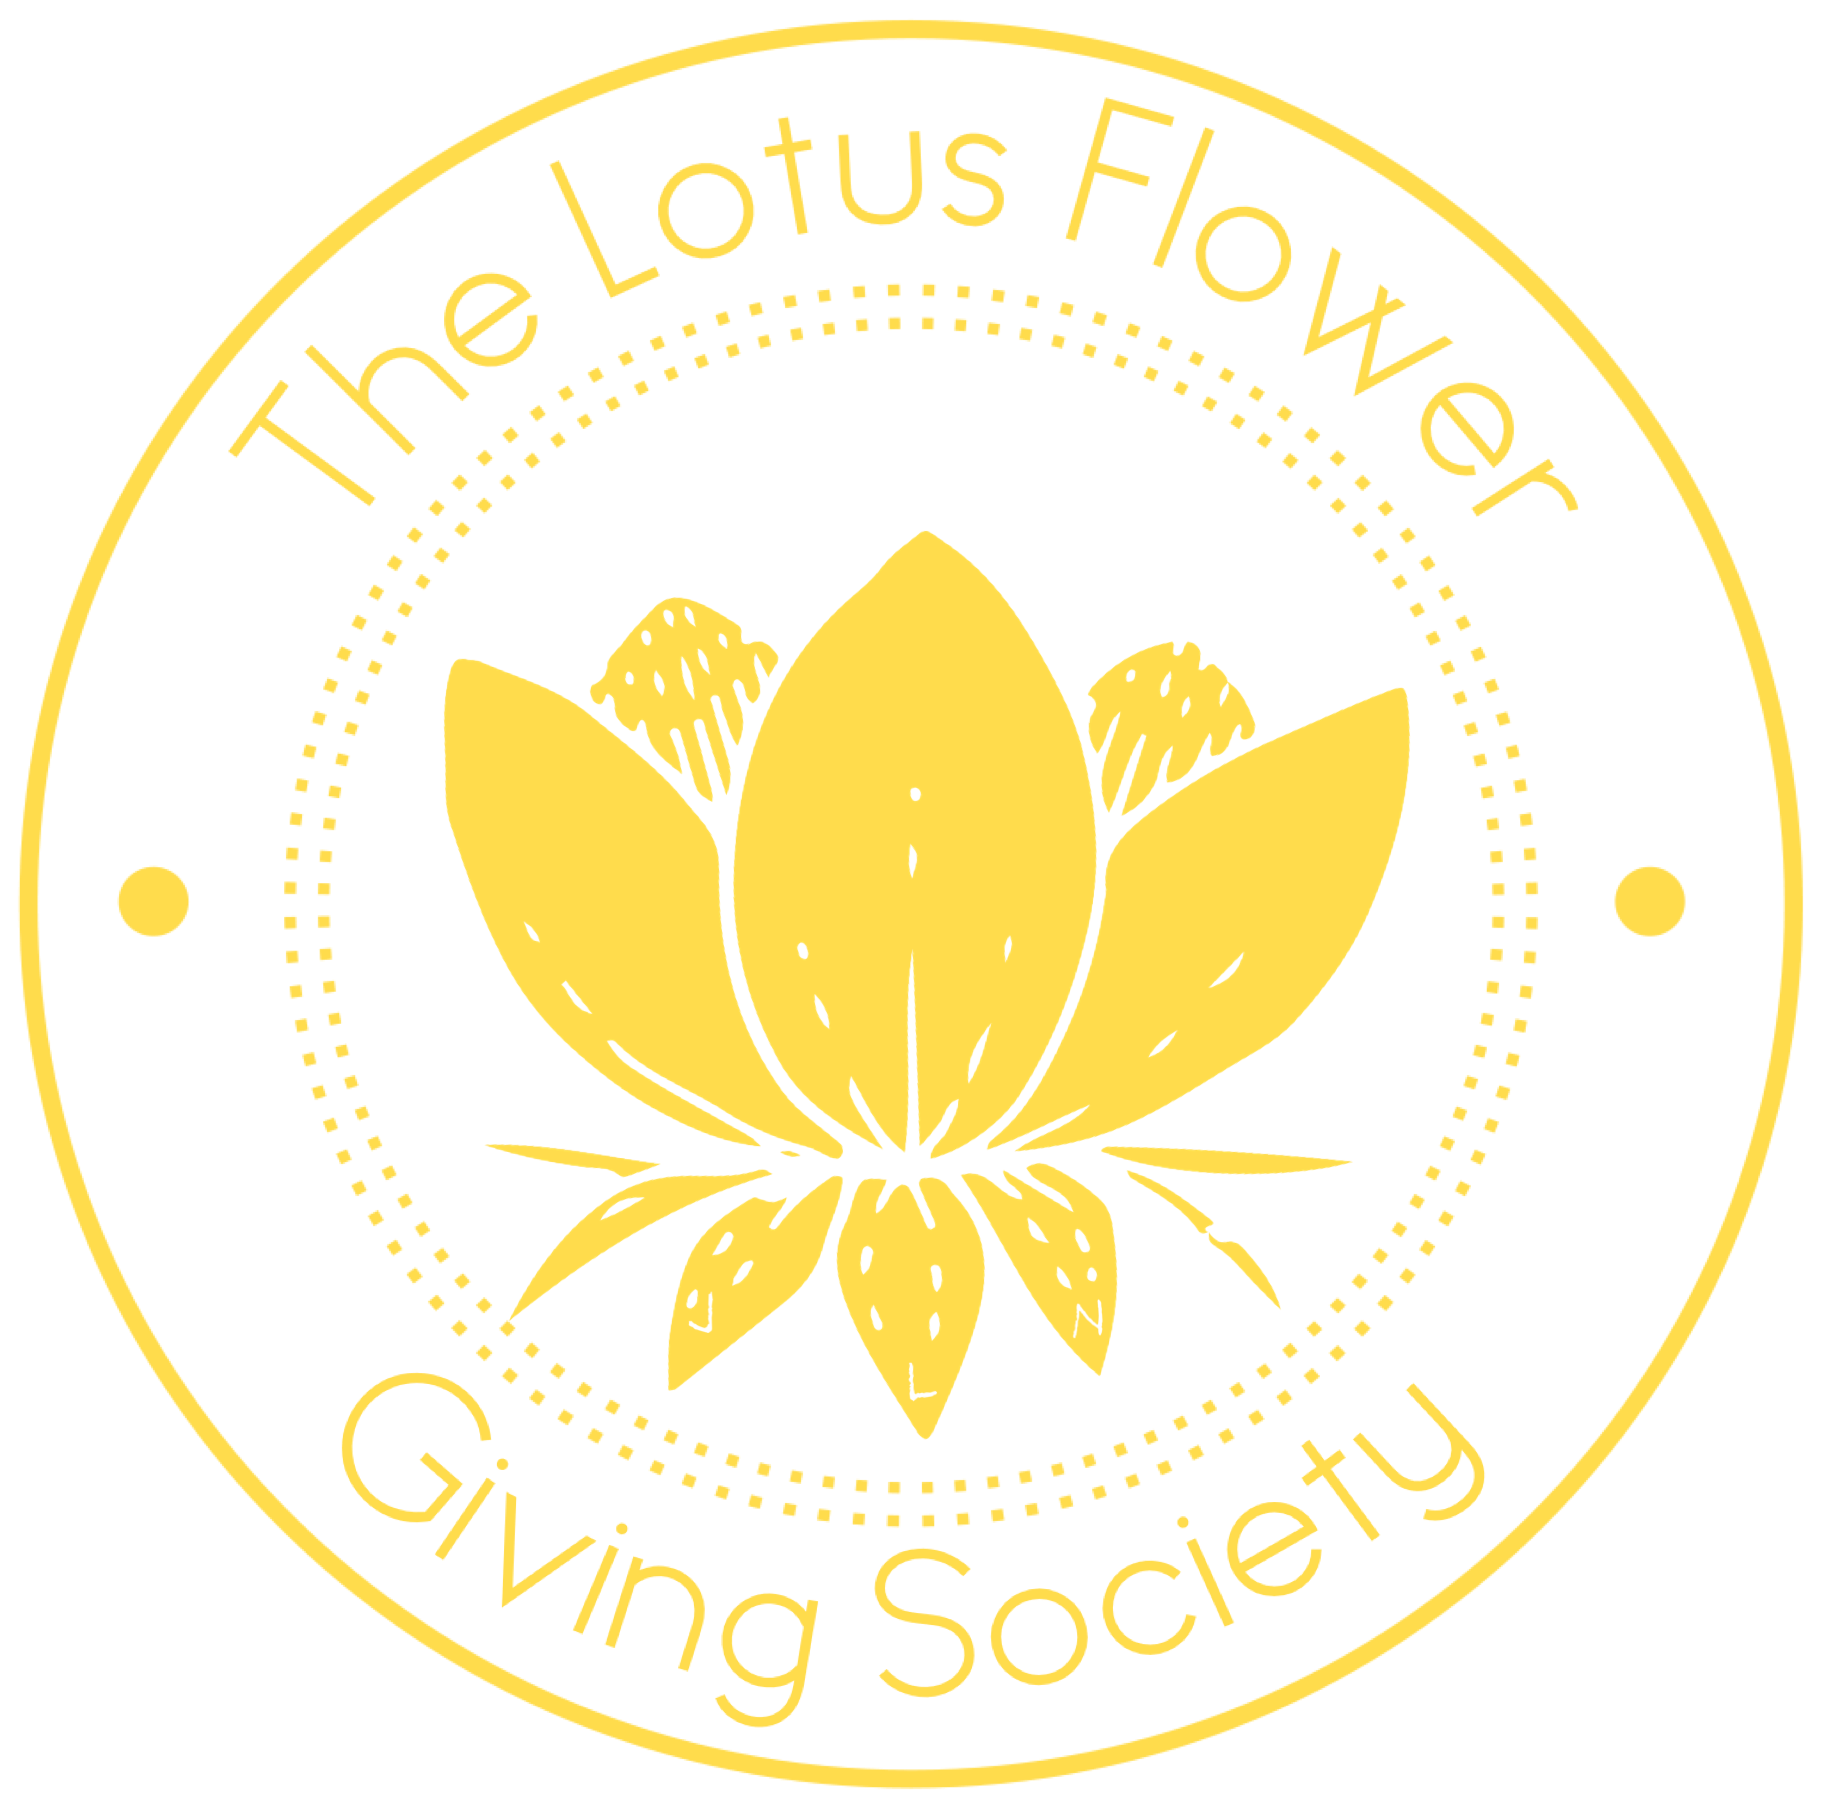 The Lotus Flower Giving Society